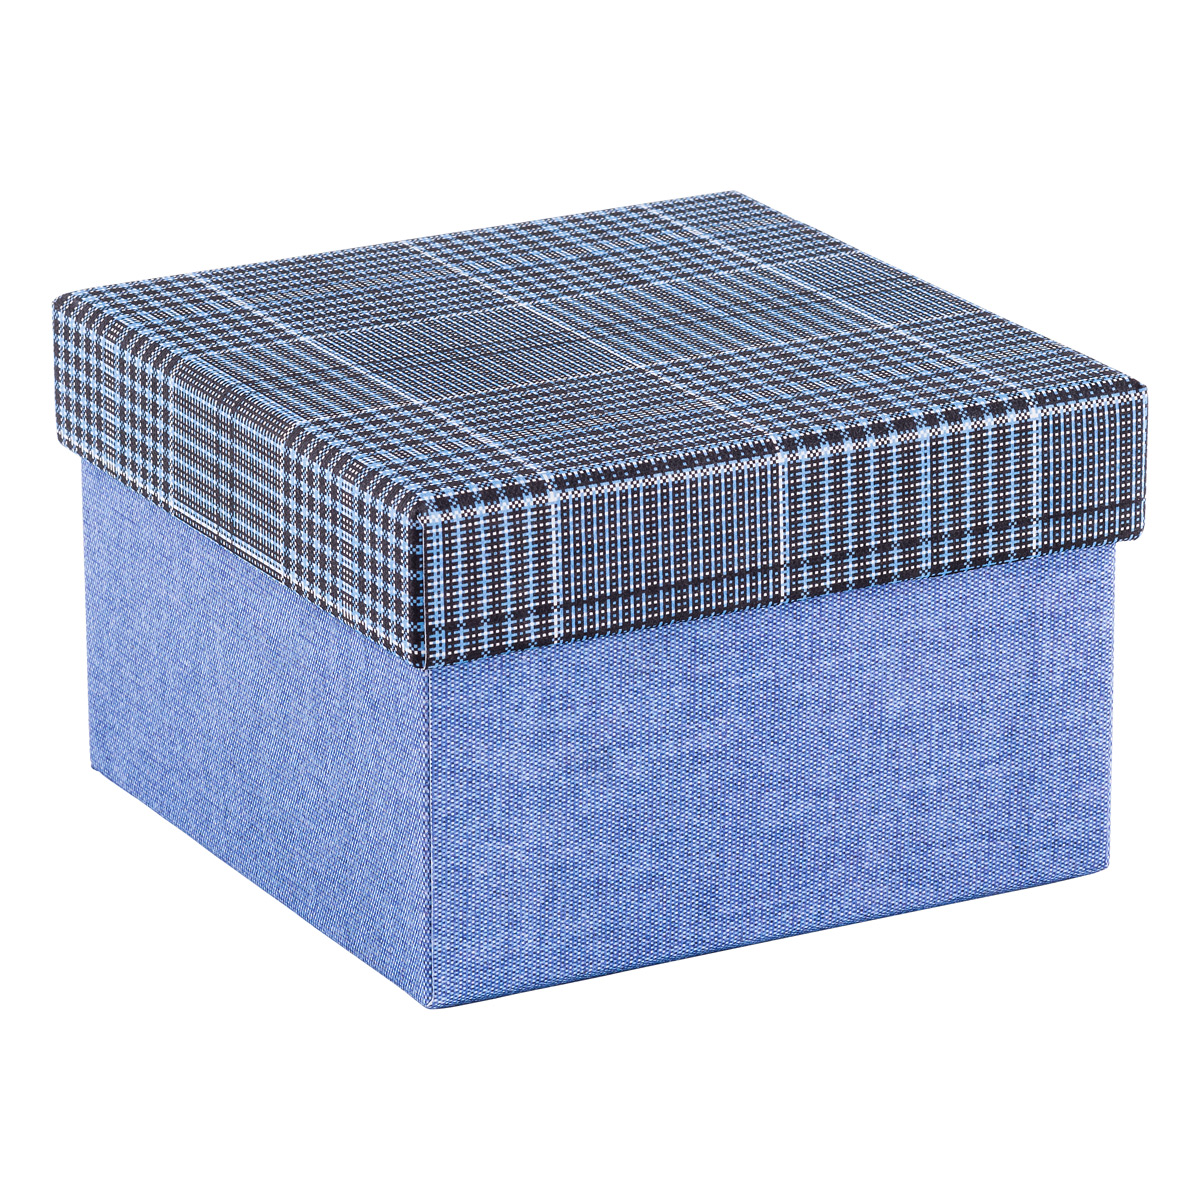 Gift Boxes, Decorative Boxes & Gift Boxes With Lids | The ...